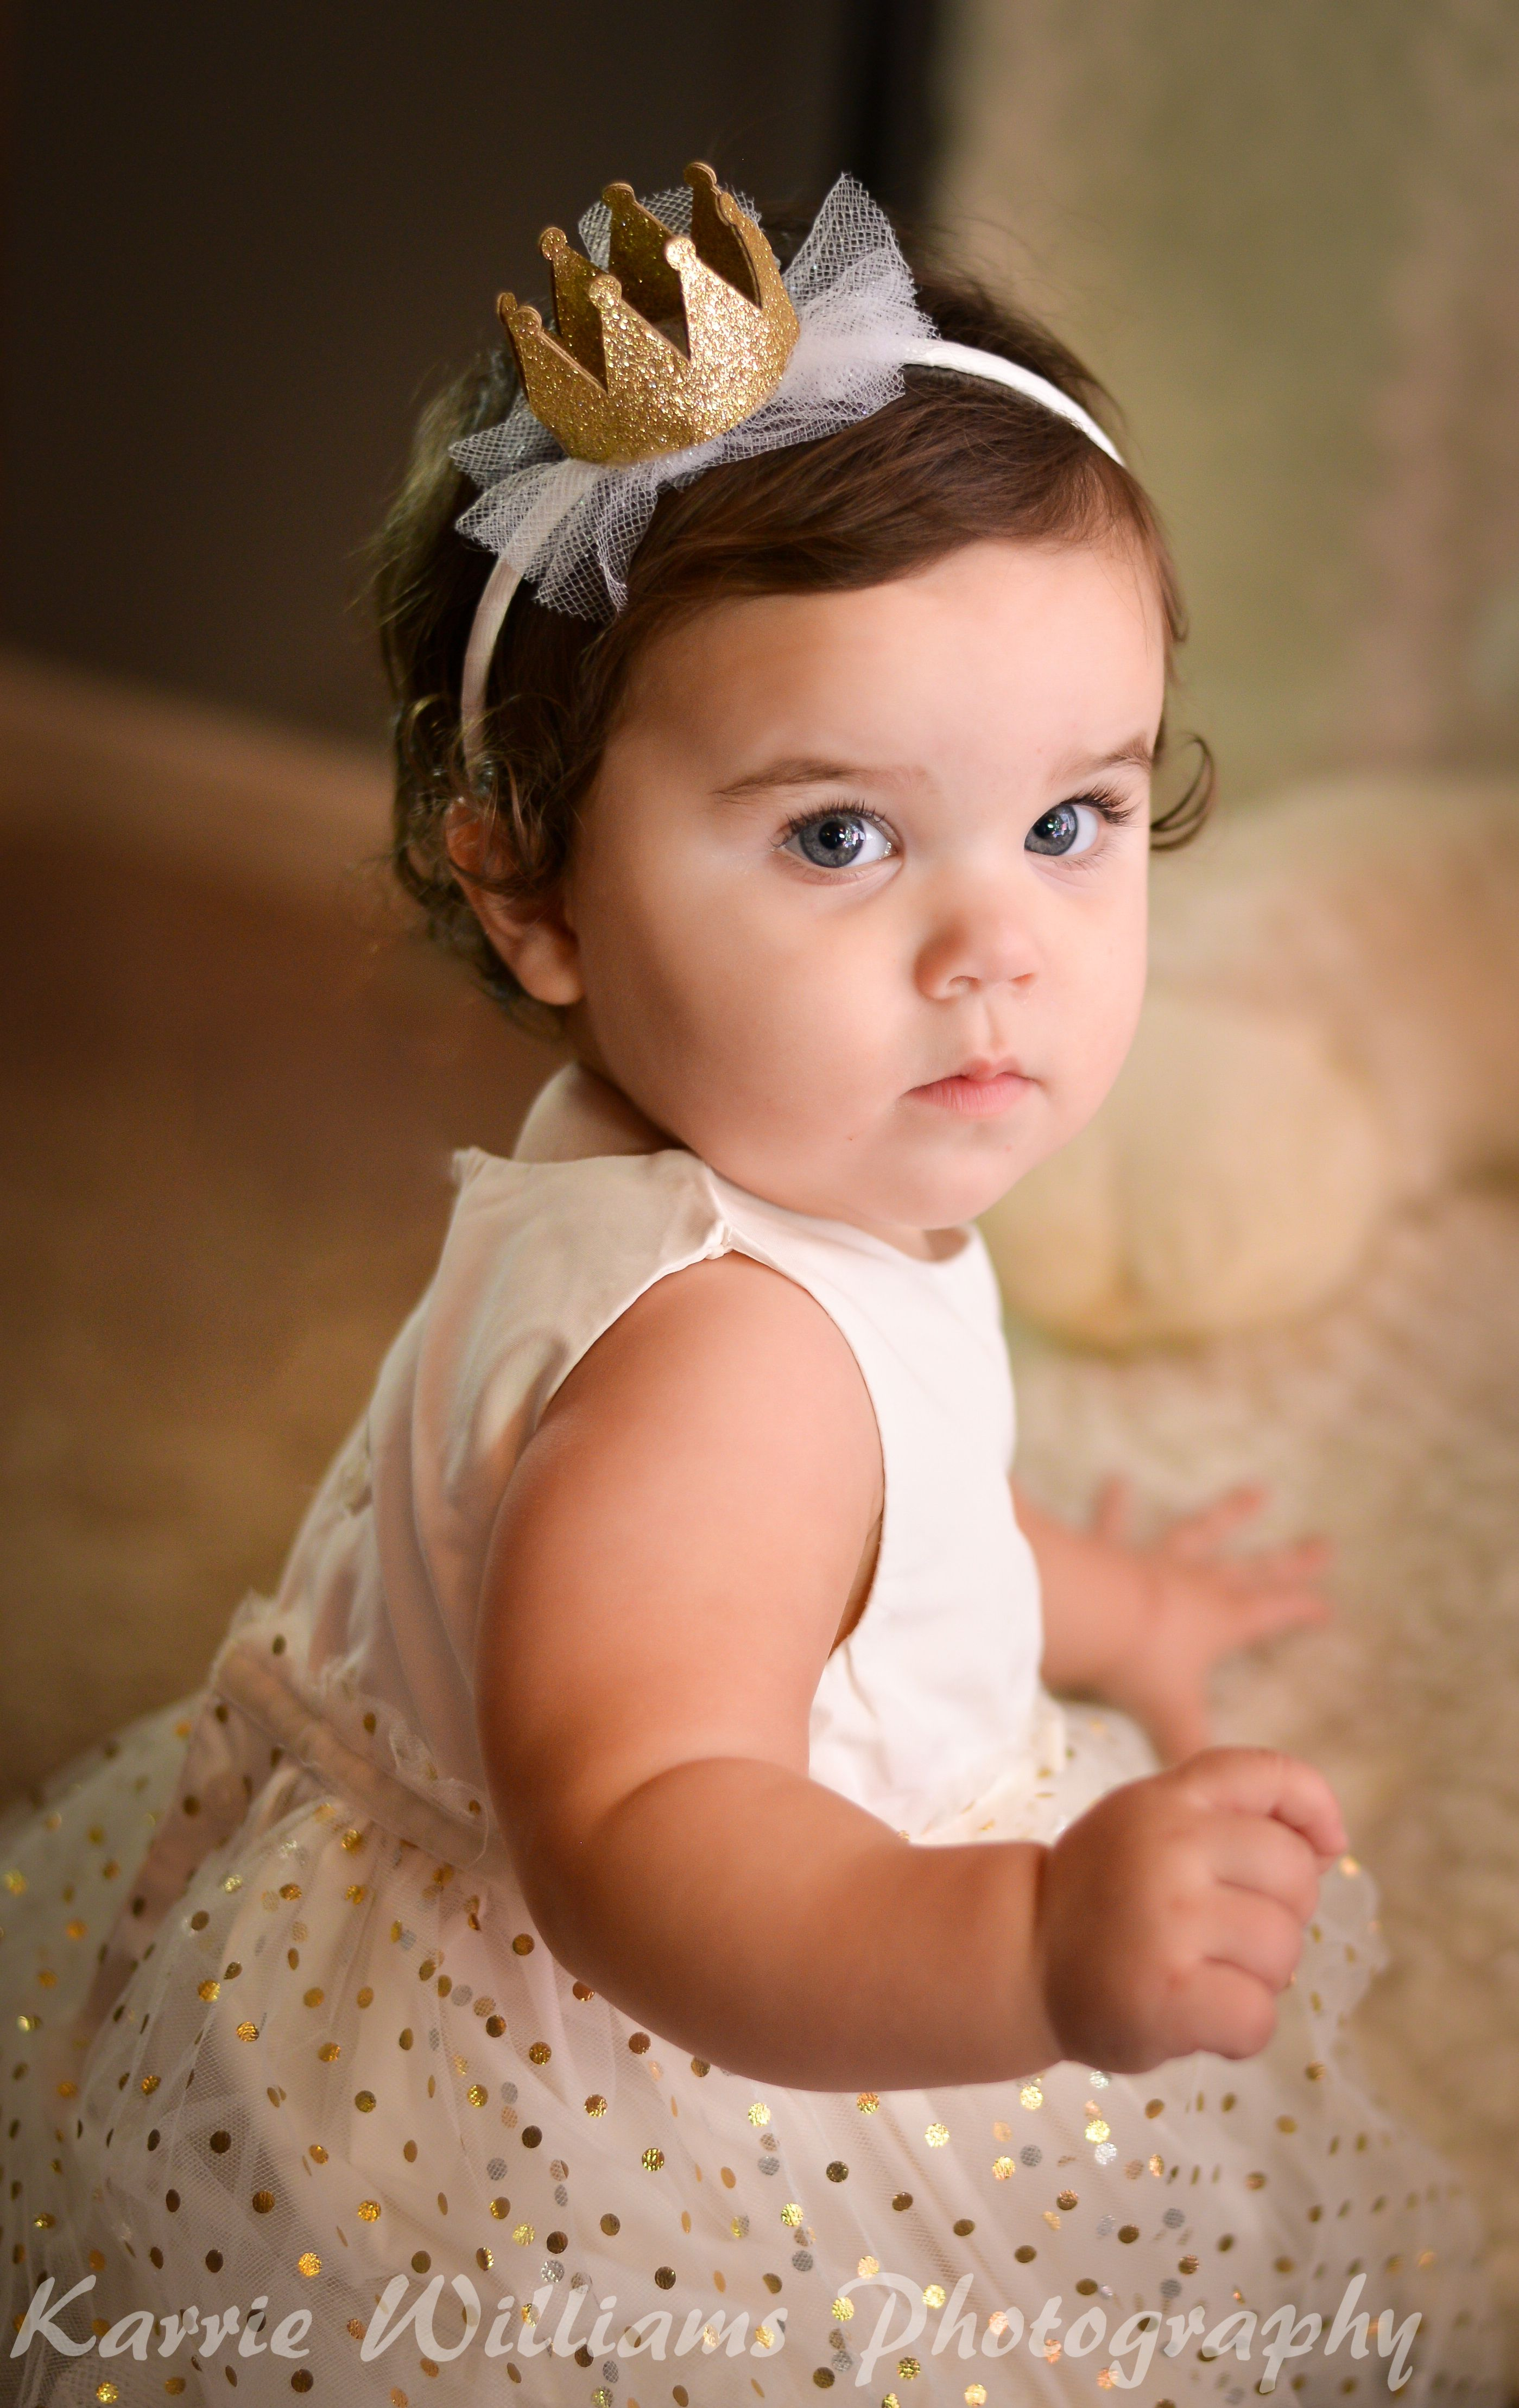 One Year Old Girl Birthday Photo Shoot. Child Photography